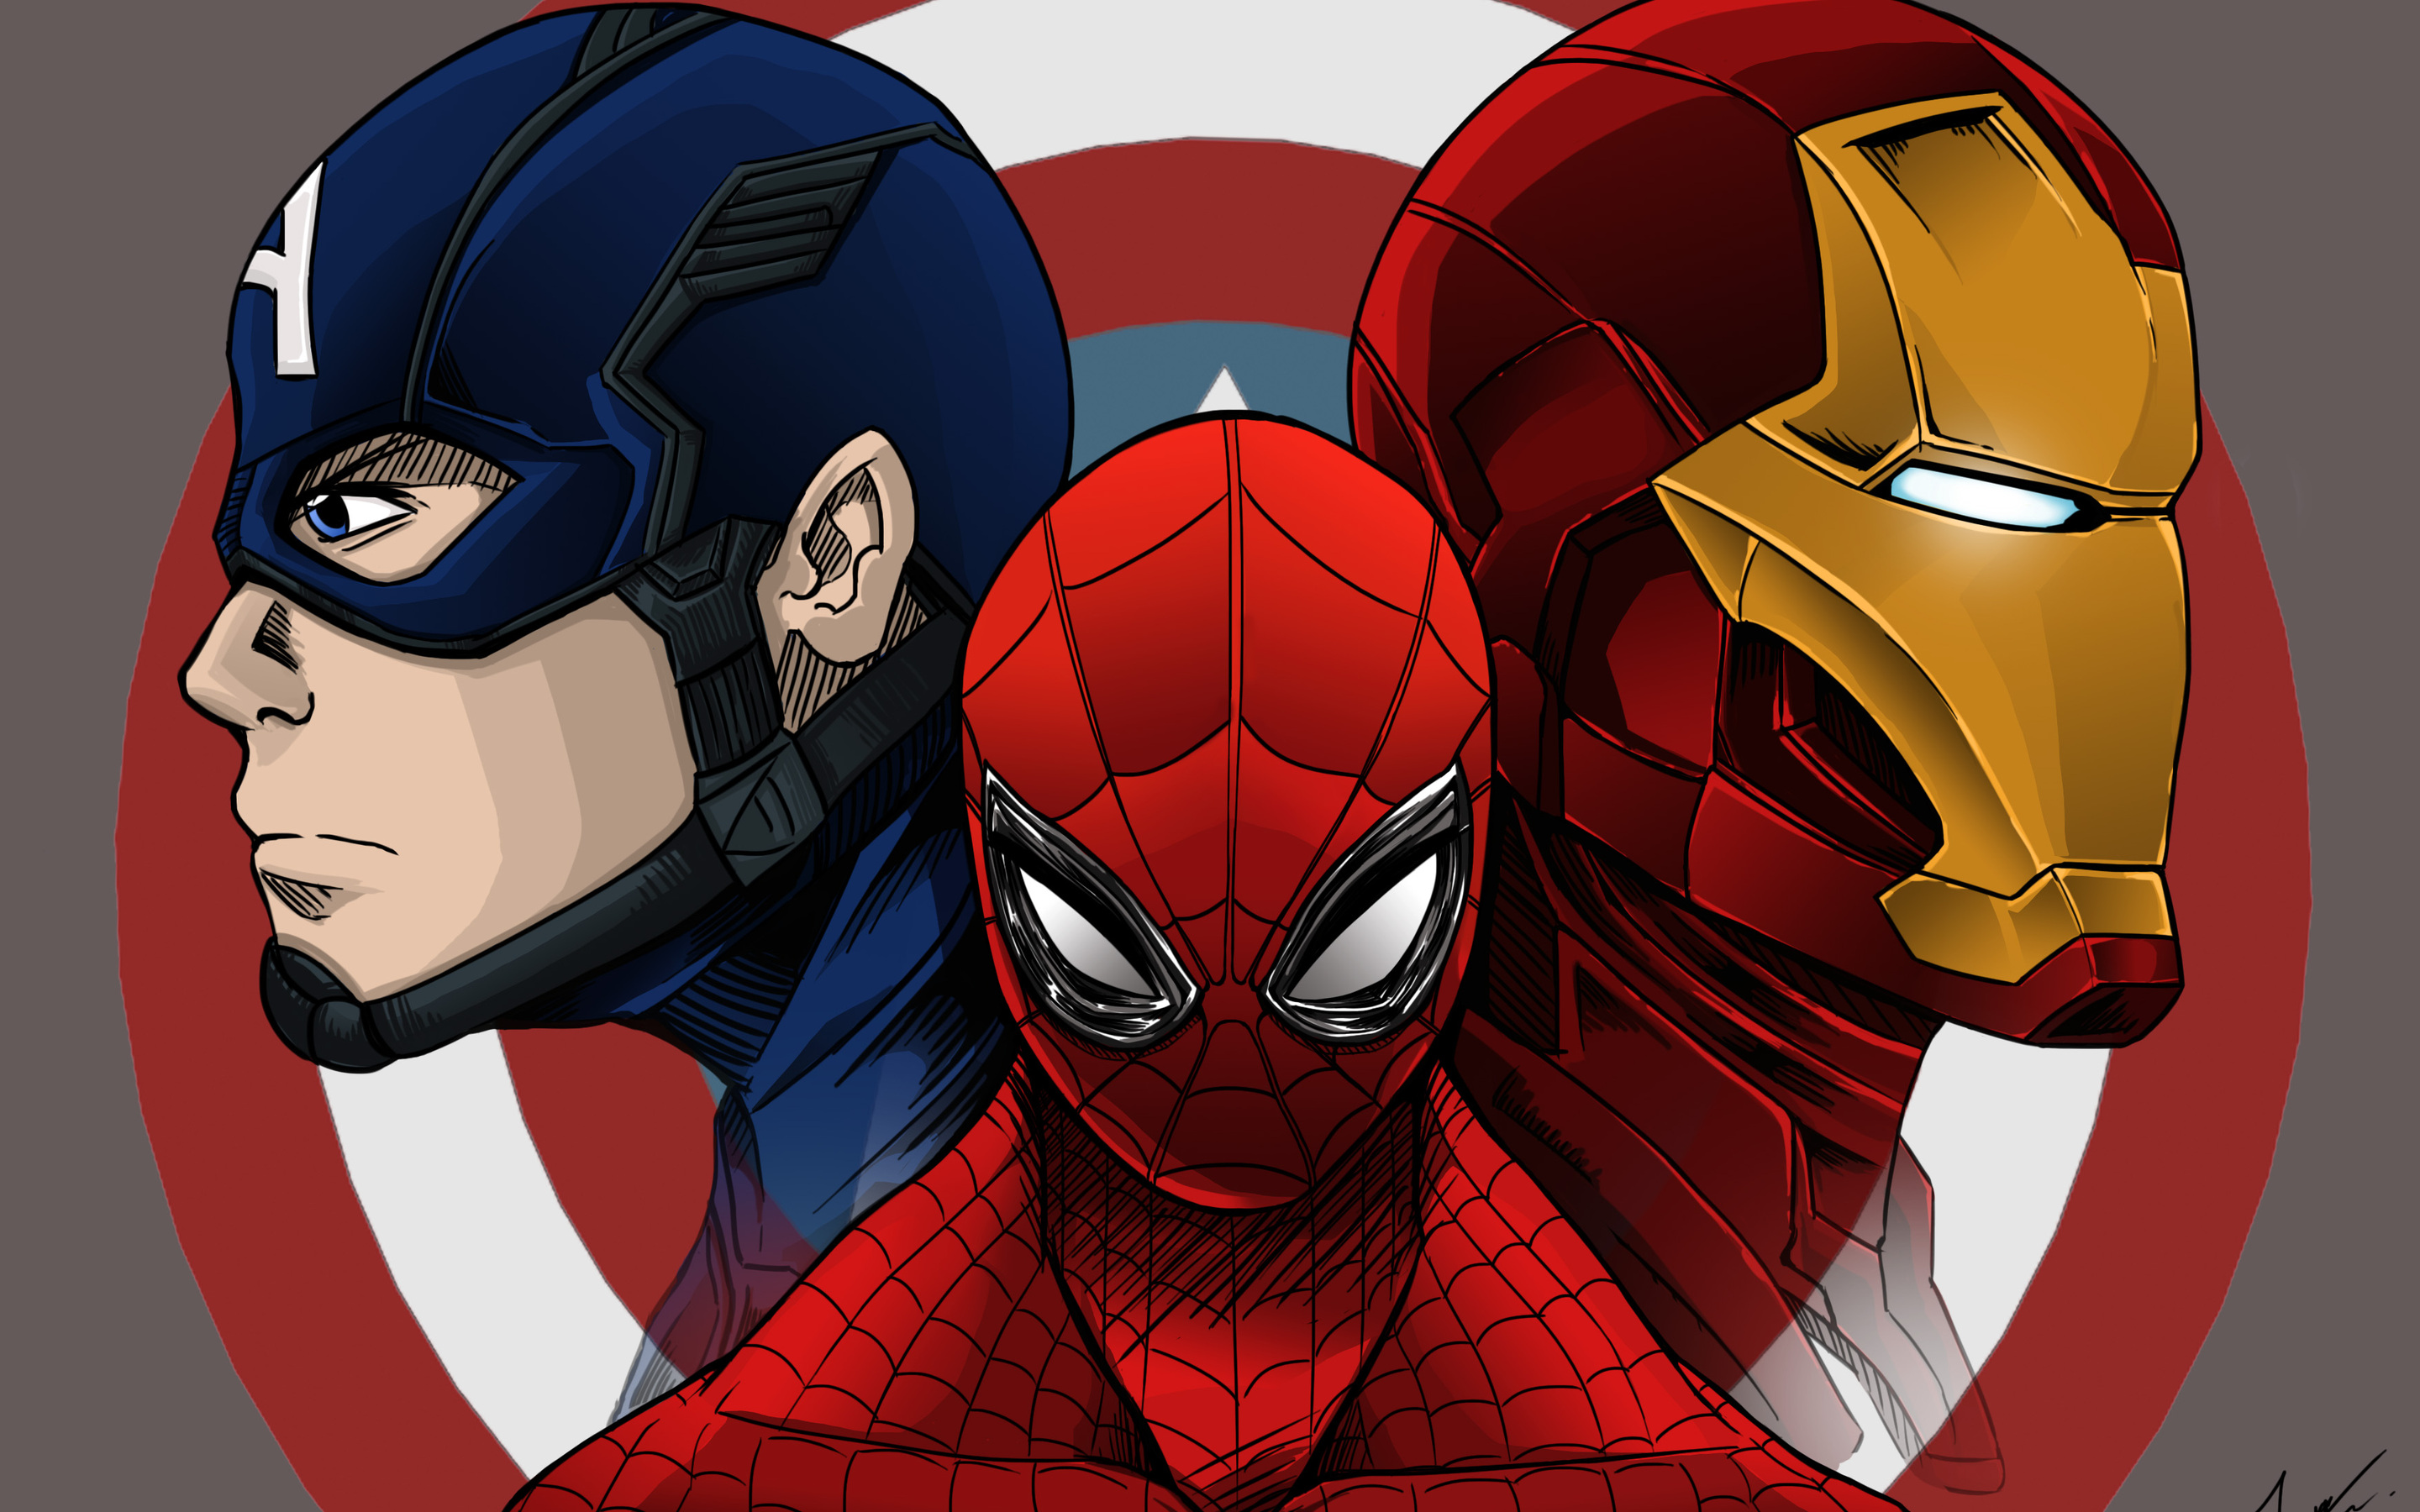 spiderman-iron-man-captain-america-artwork-k0.jpg